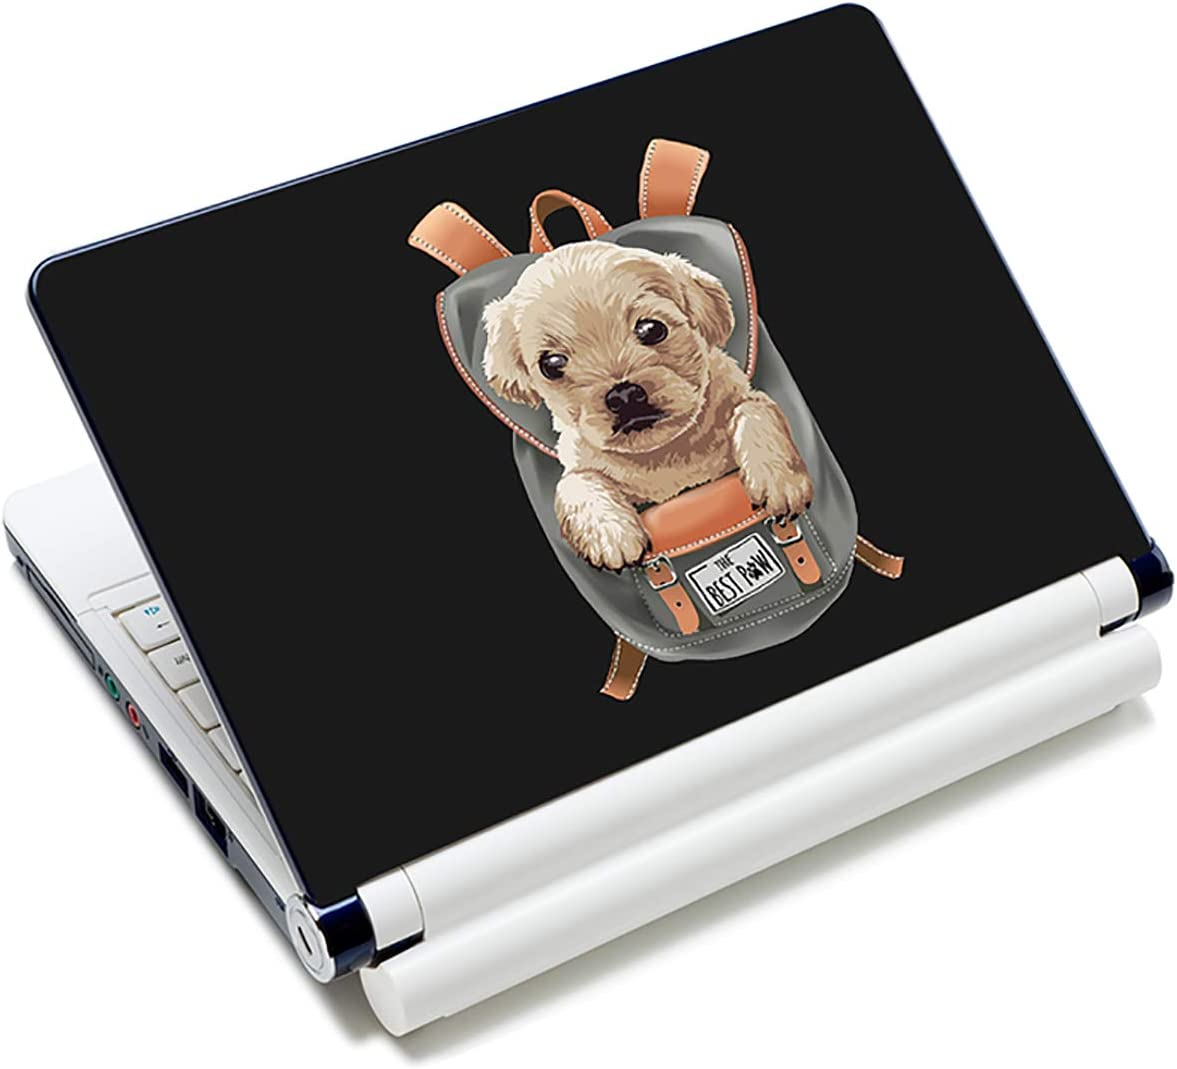 Laptop Stickers Decal,12 13 14 15 15.6 inches Netbook Laptop Skin Sticker Reusable Protector Cover Case for Toshiba Hp Samsung Dell Apple Acer Leonovo Sony Asus Laptop Notebook (Cute Dog)